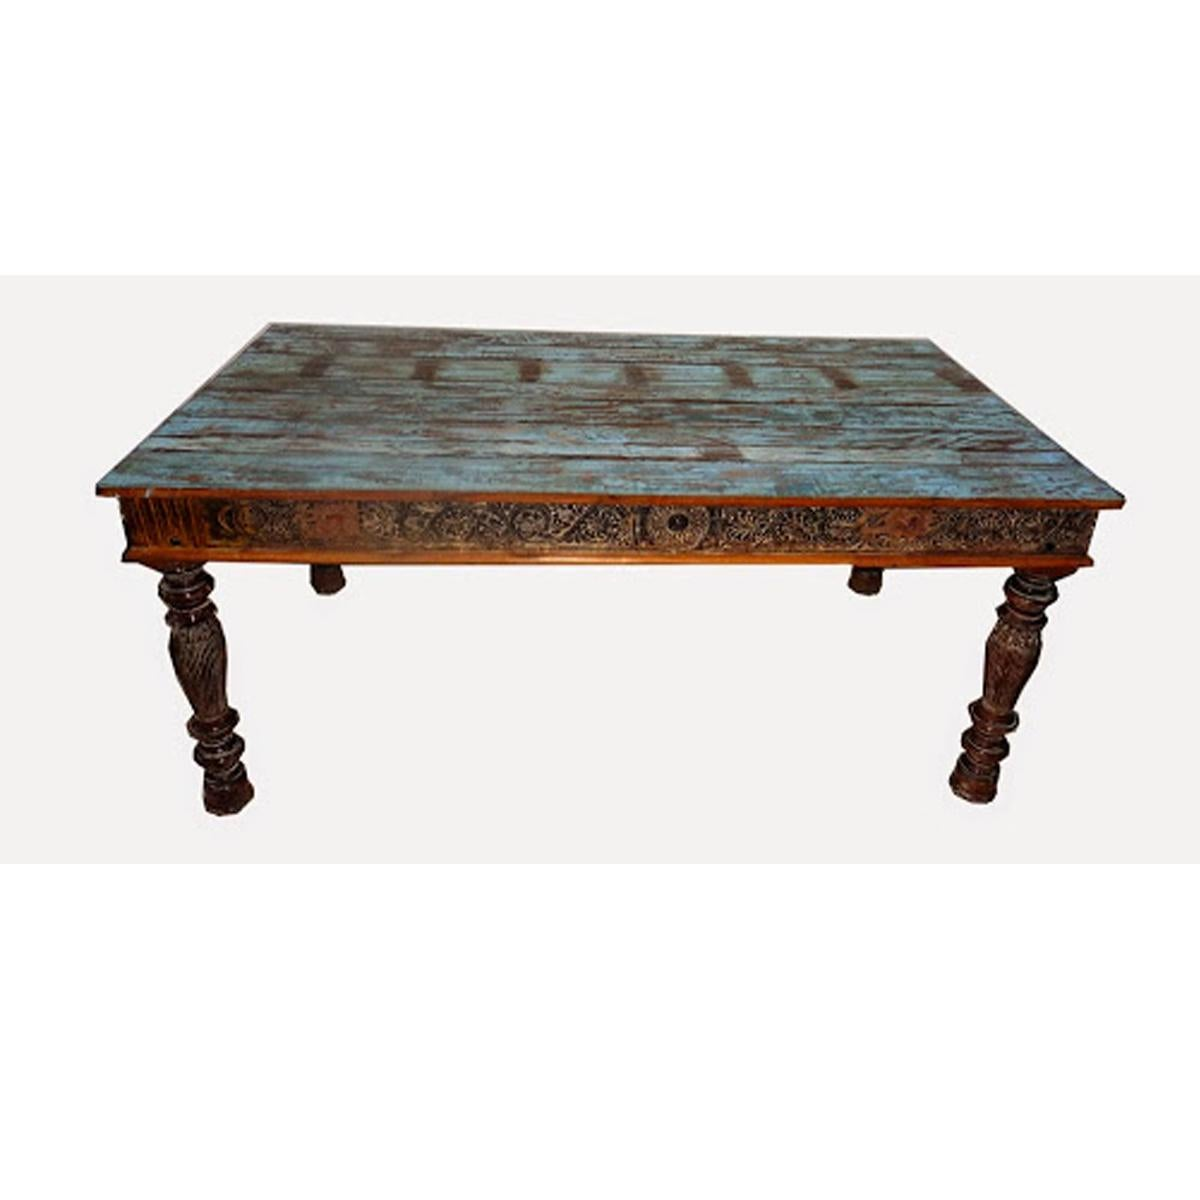 Indian Reclaimed Carved Wood Dining Table Chairish : indian reclaimed carved wood dining table 8254aspectfitampwidth640ampheight640 from www.chairish.com size 640 x 640 jpeg 28kB